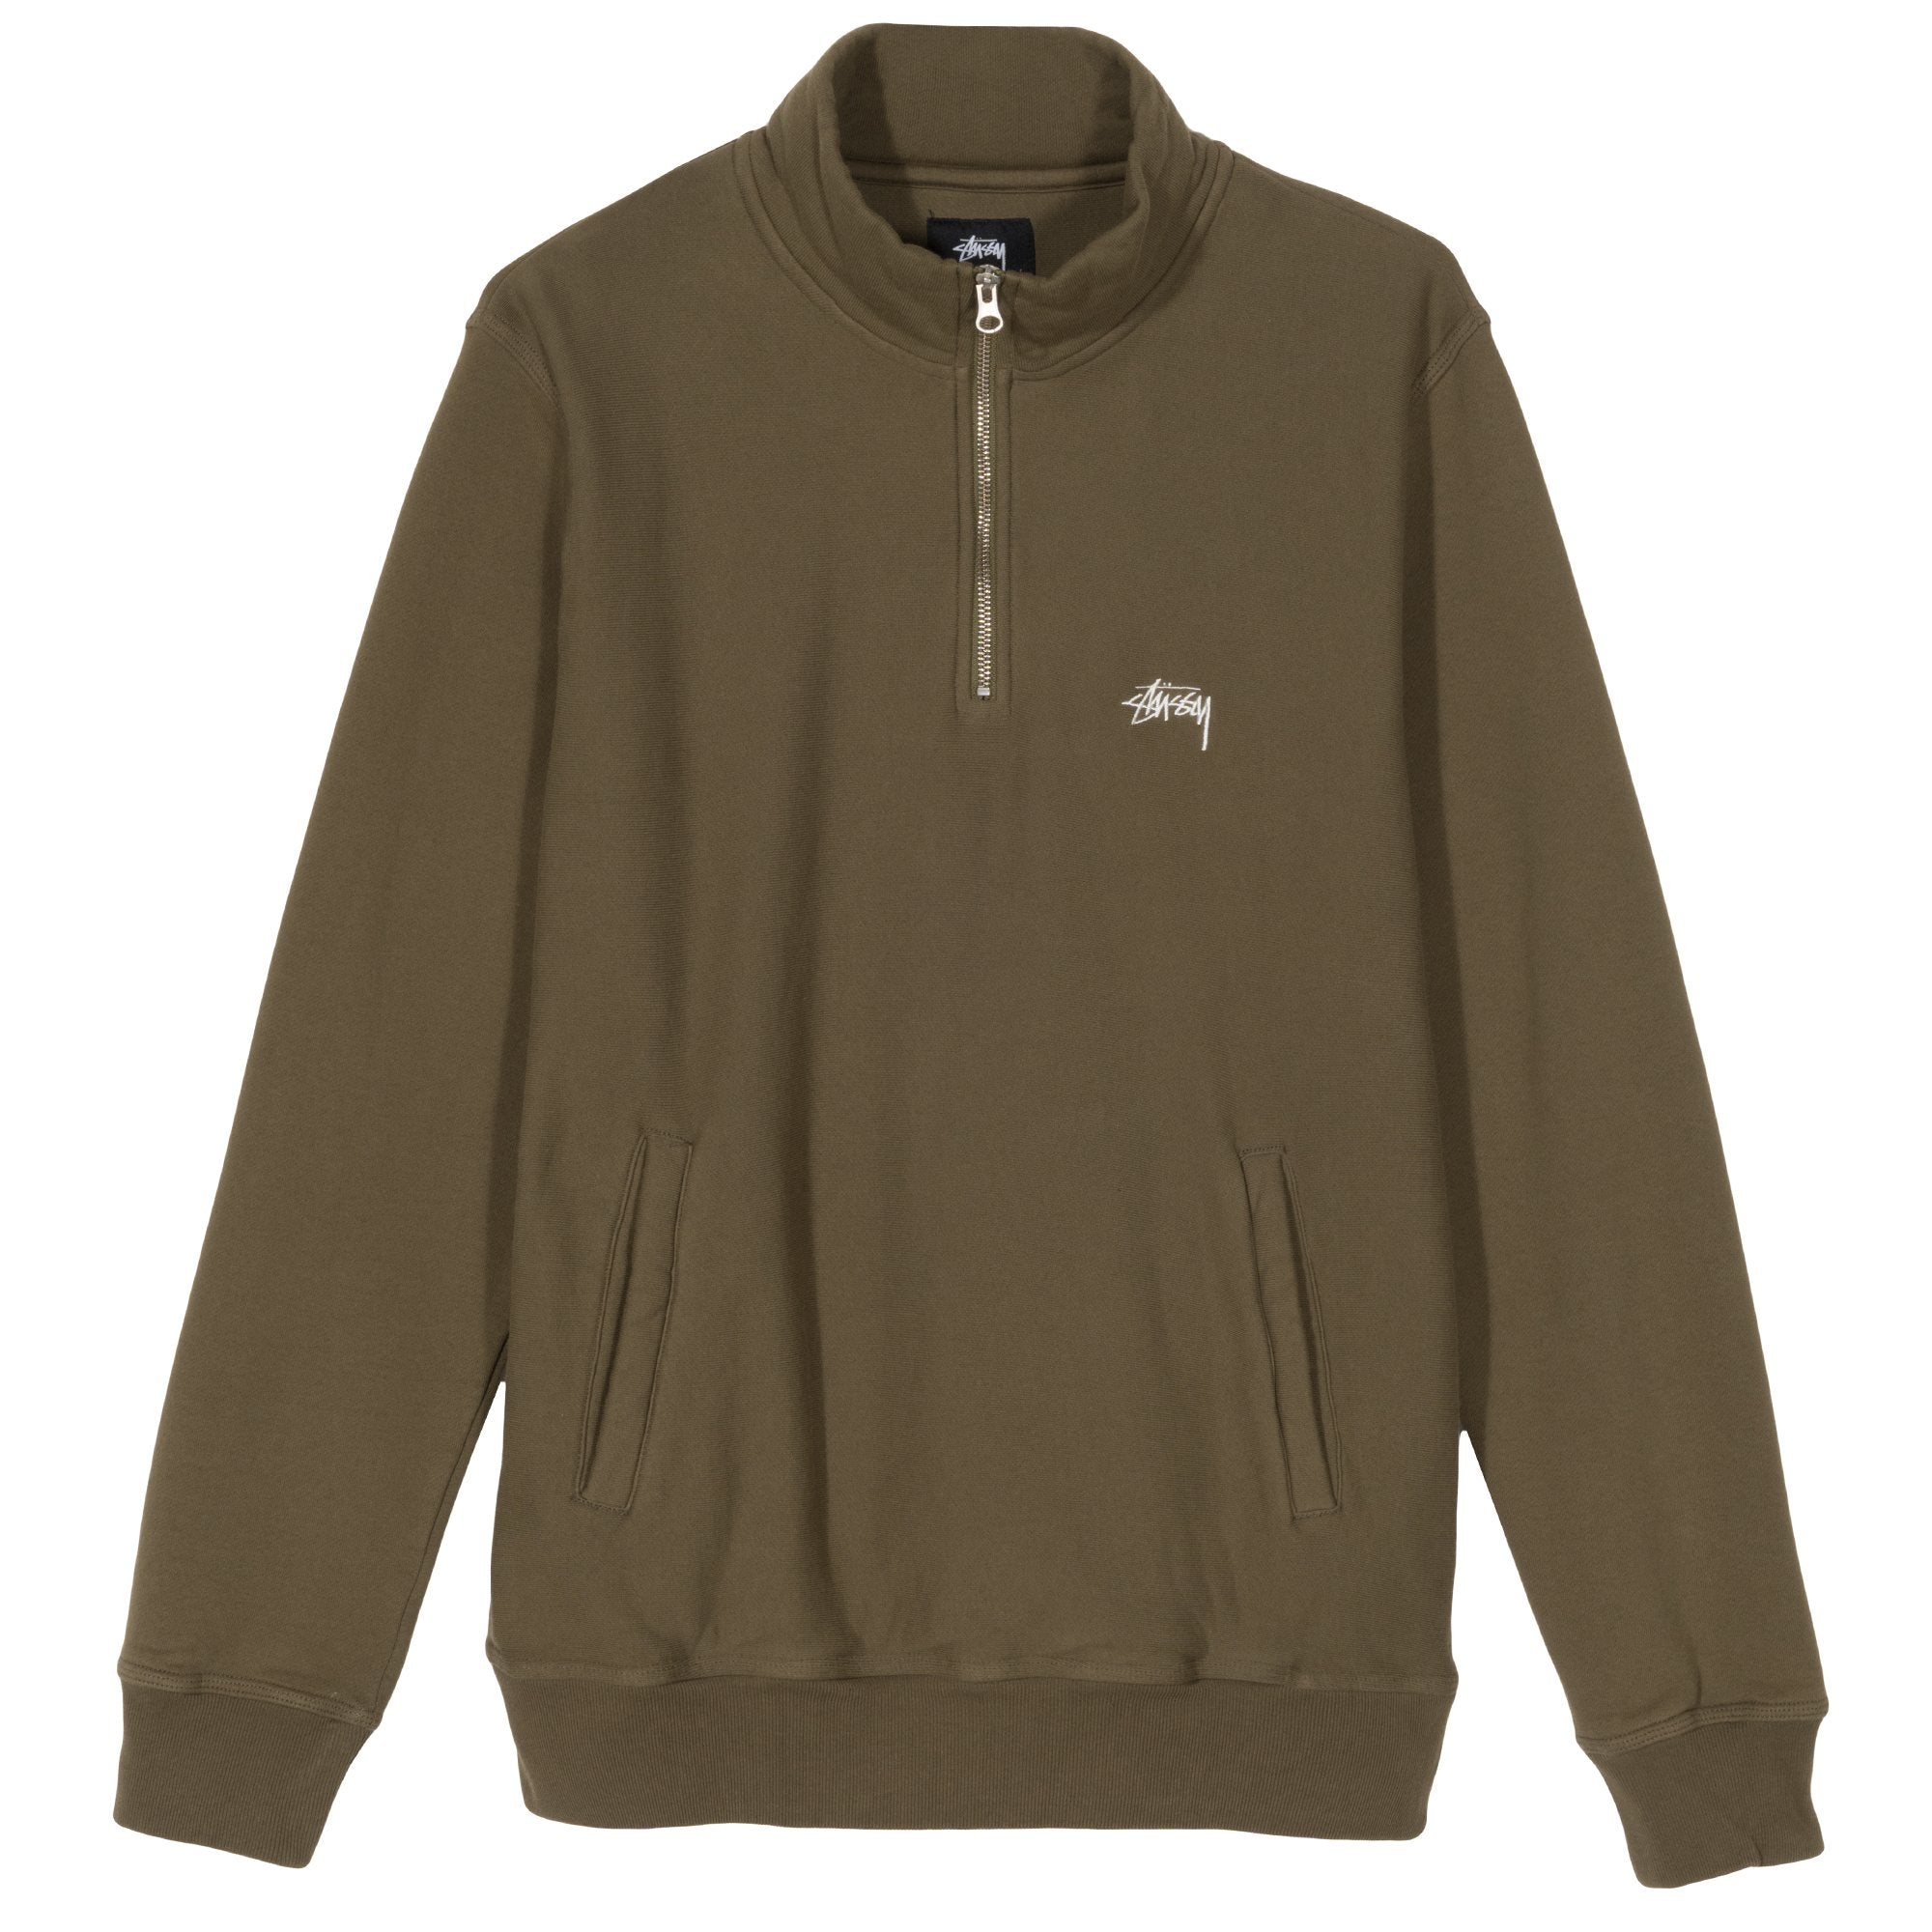 7dd986fc6d8 Men's Hoodies, Crewneck Sweatshirts and Sweaters by Stussy – Stussy.com